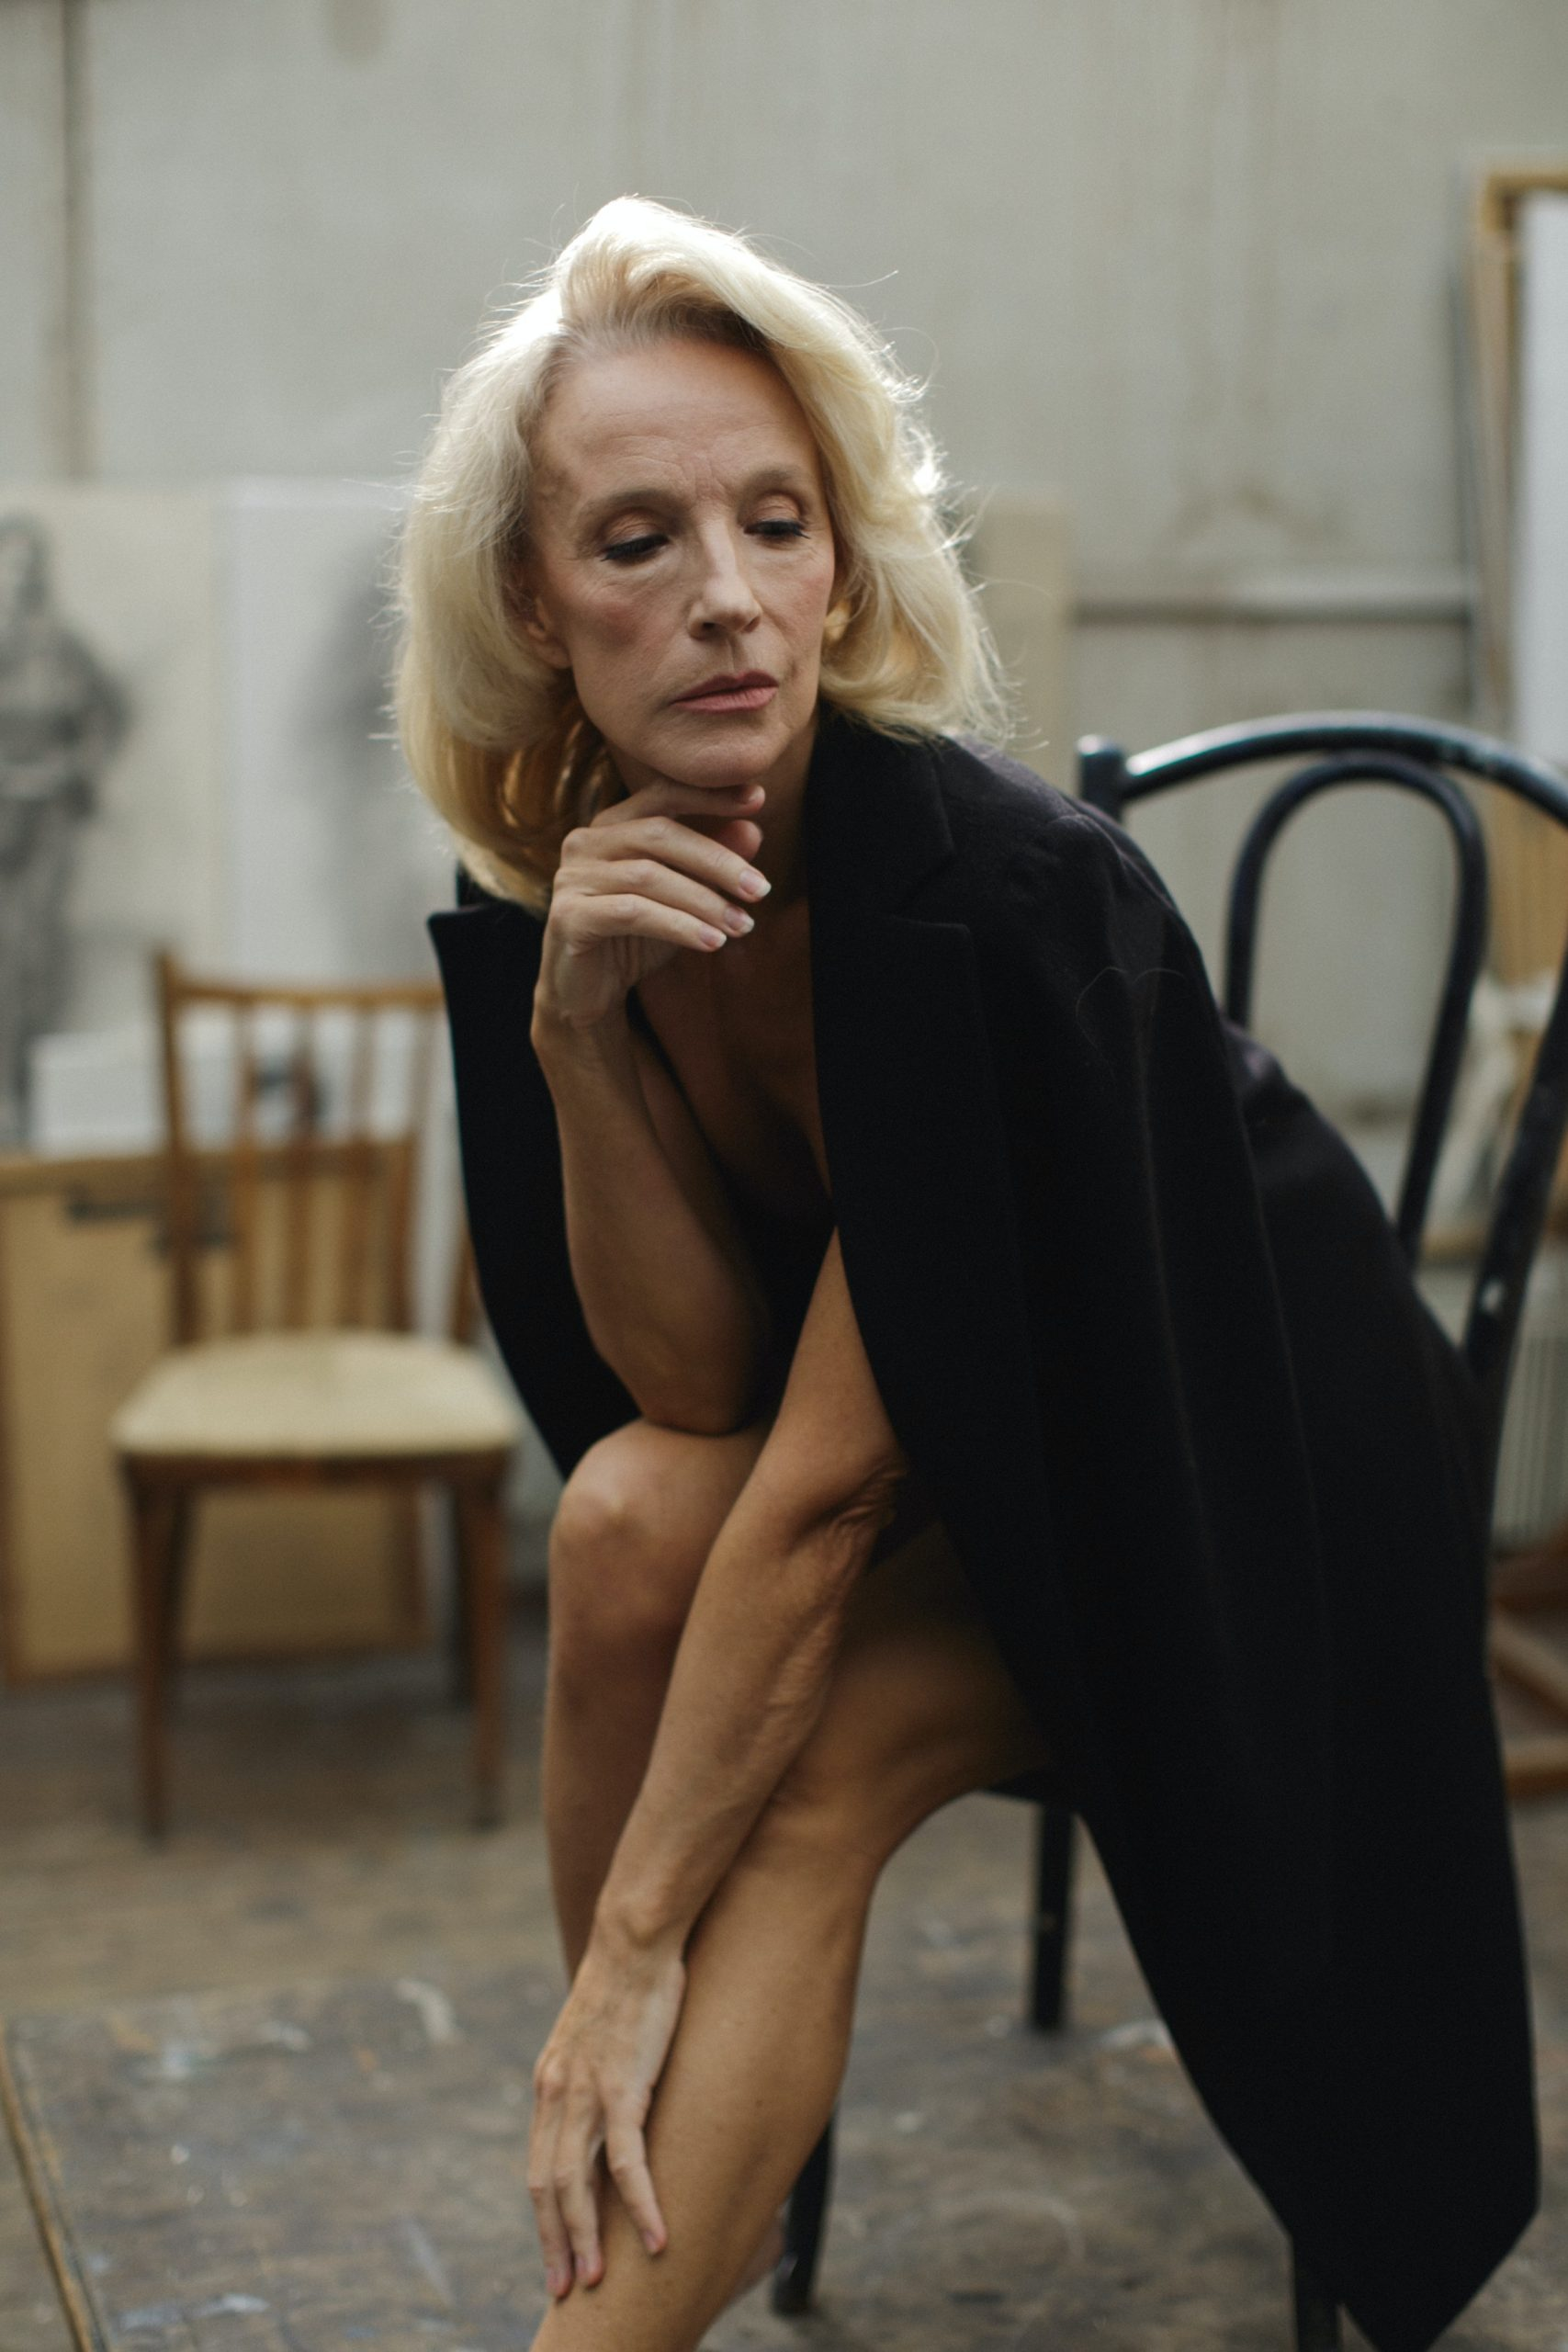 The mature woman, sex by excellence